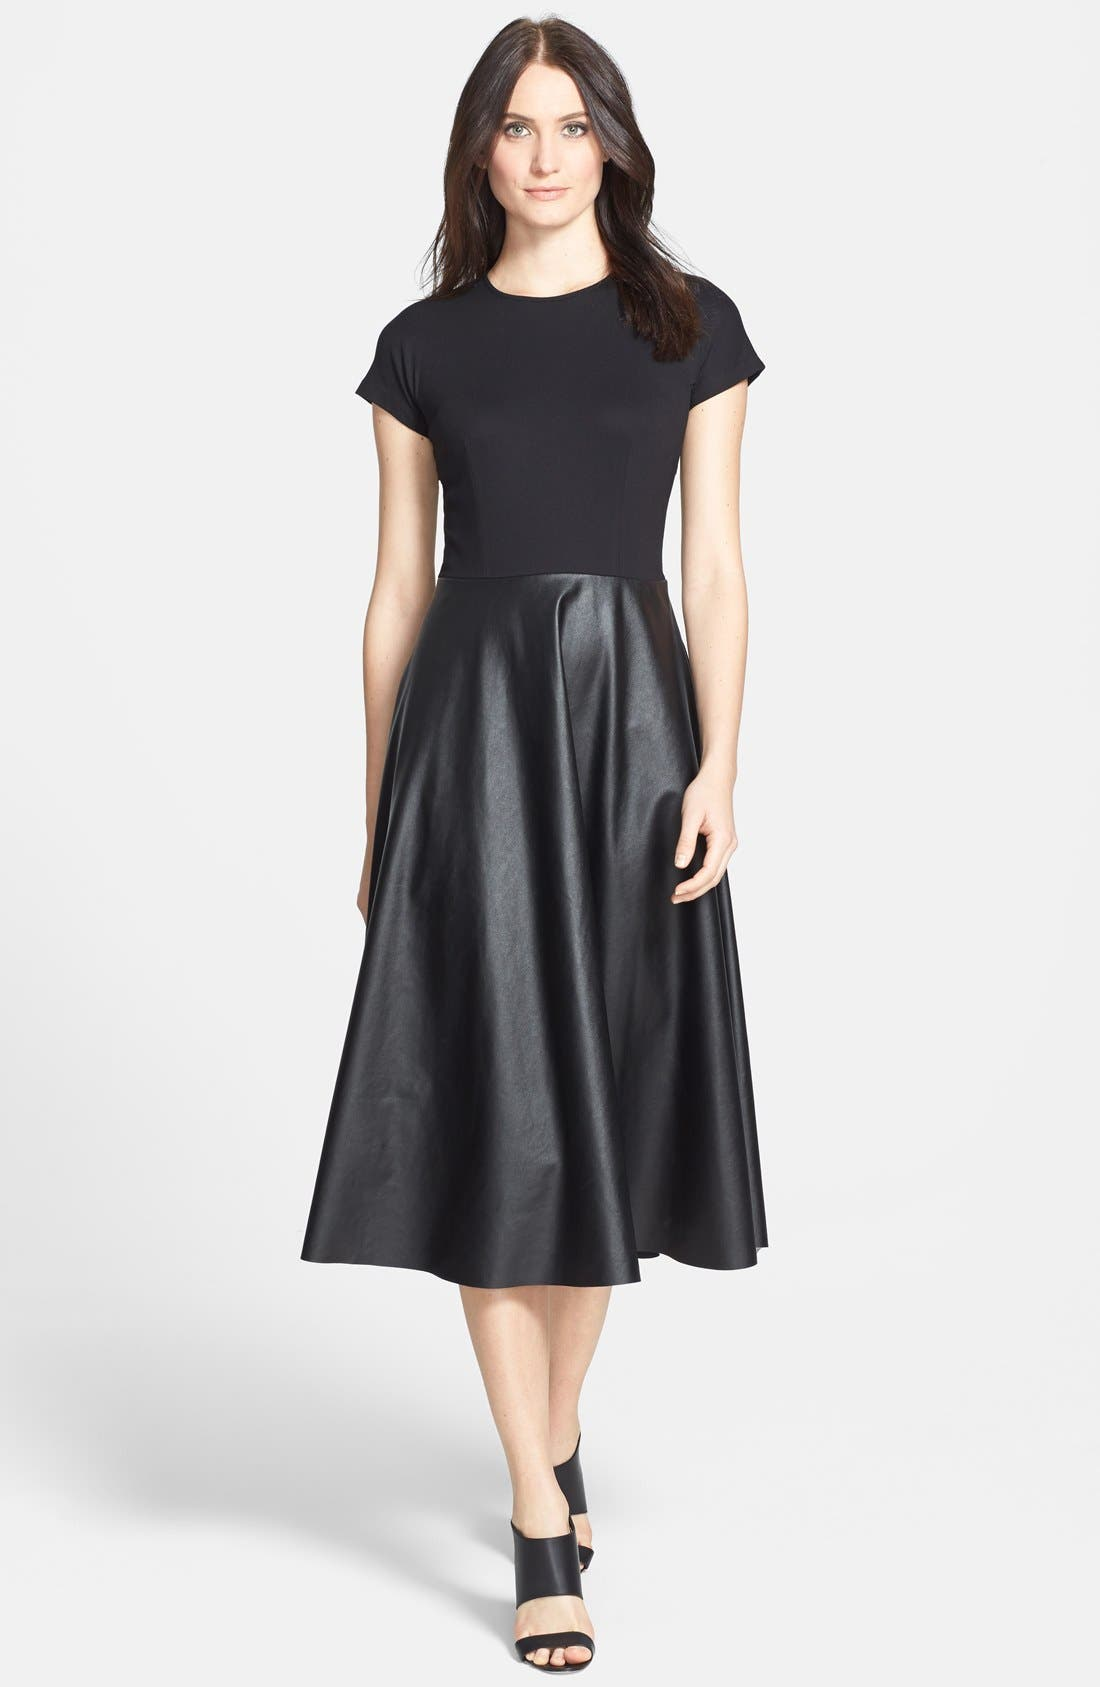 Main Image - Lafayette 148 New York 'Mirna - Neo Tech' Dress